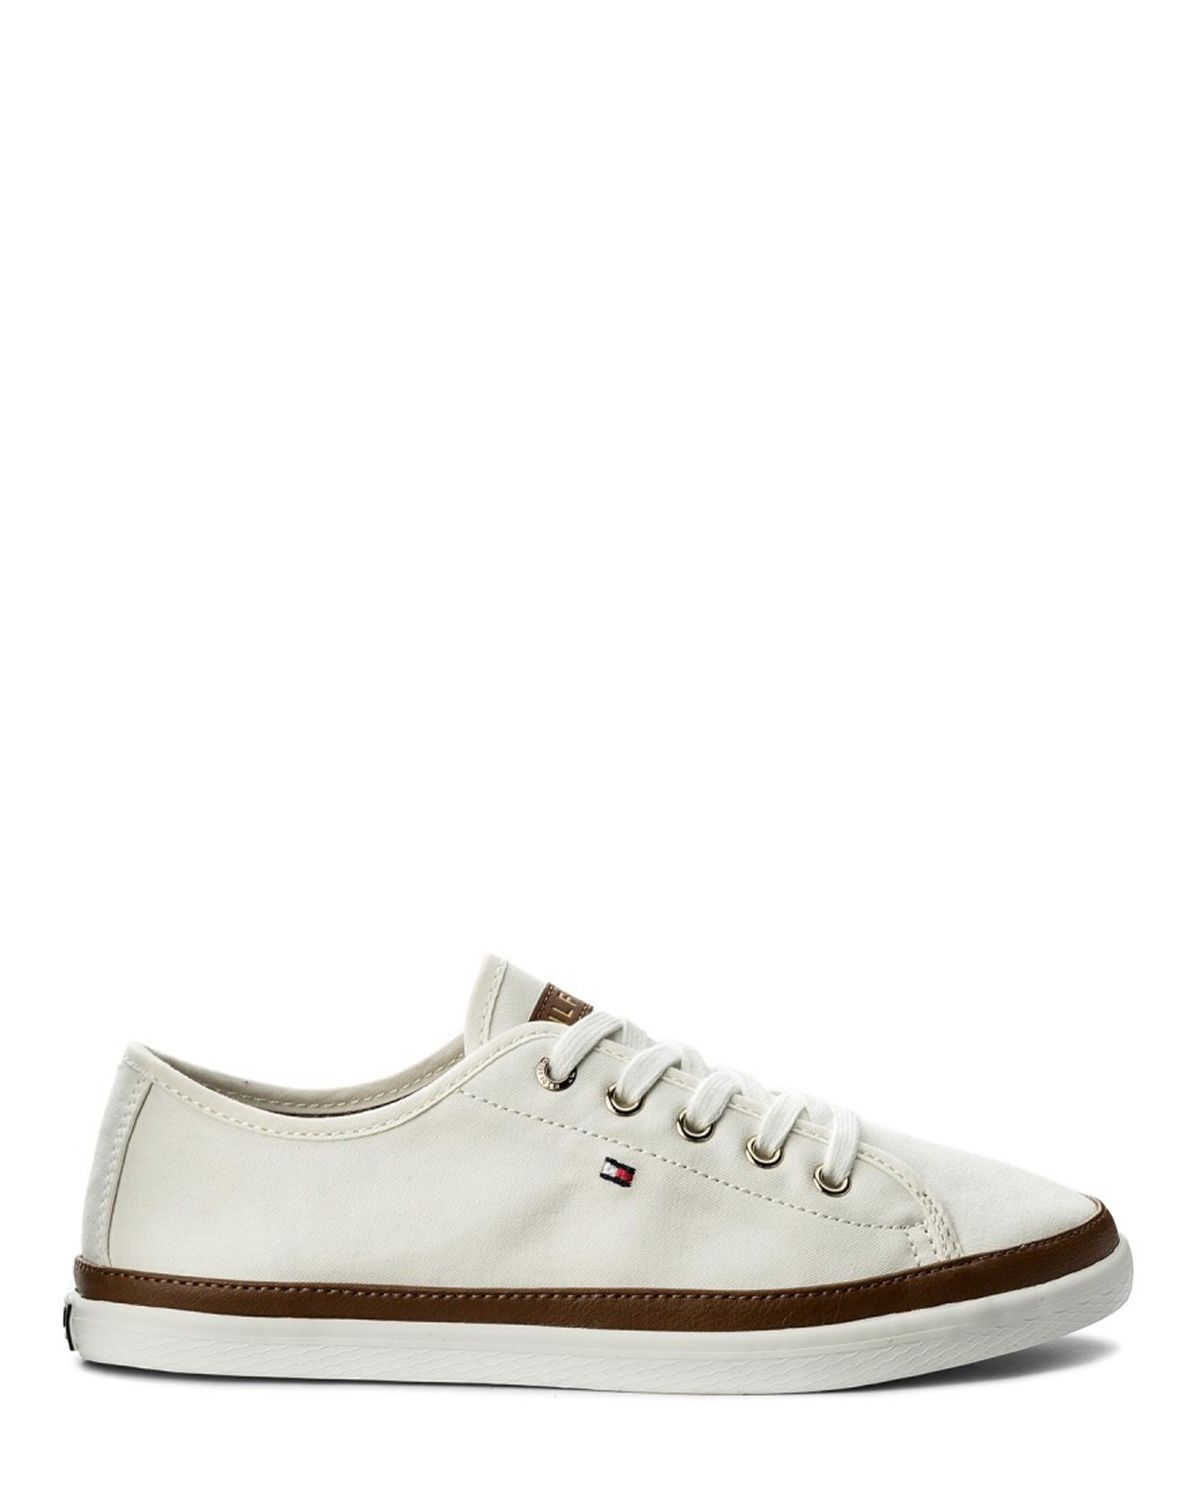 Tommy Hilfiger Iconic Kesha Sneakers FW0FW02823 White